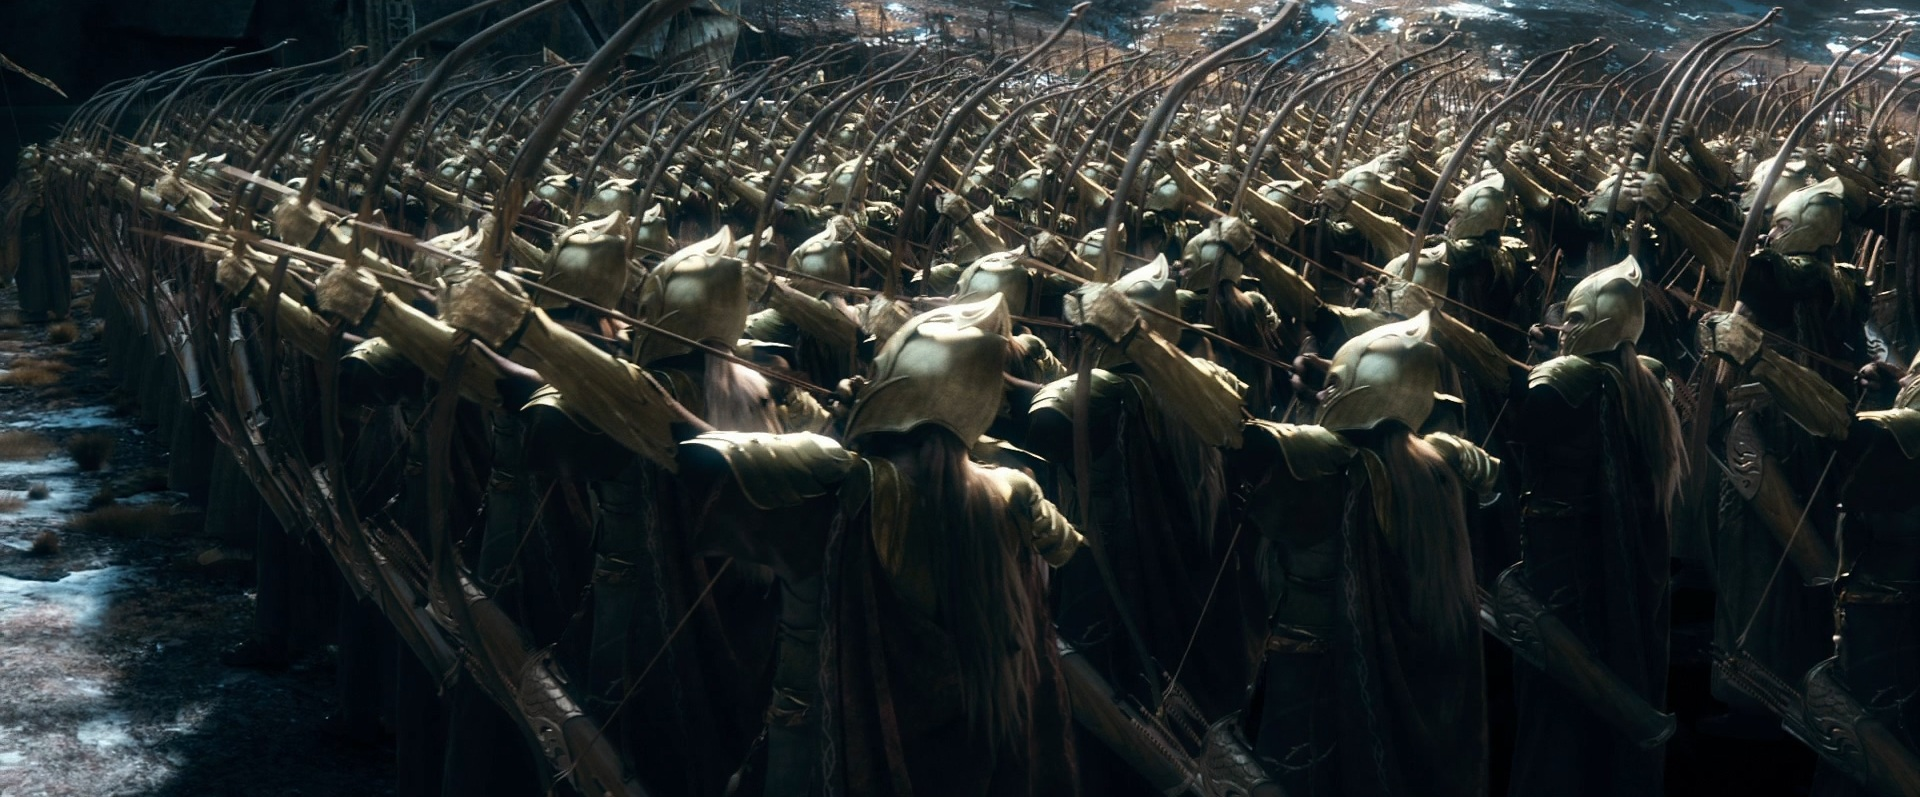 Image result for the lord o the rings elf armies